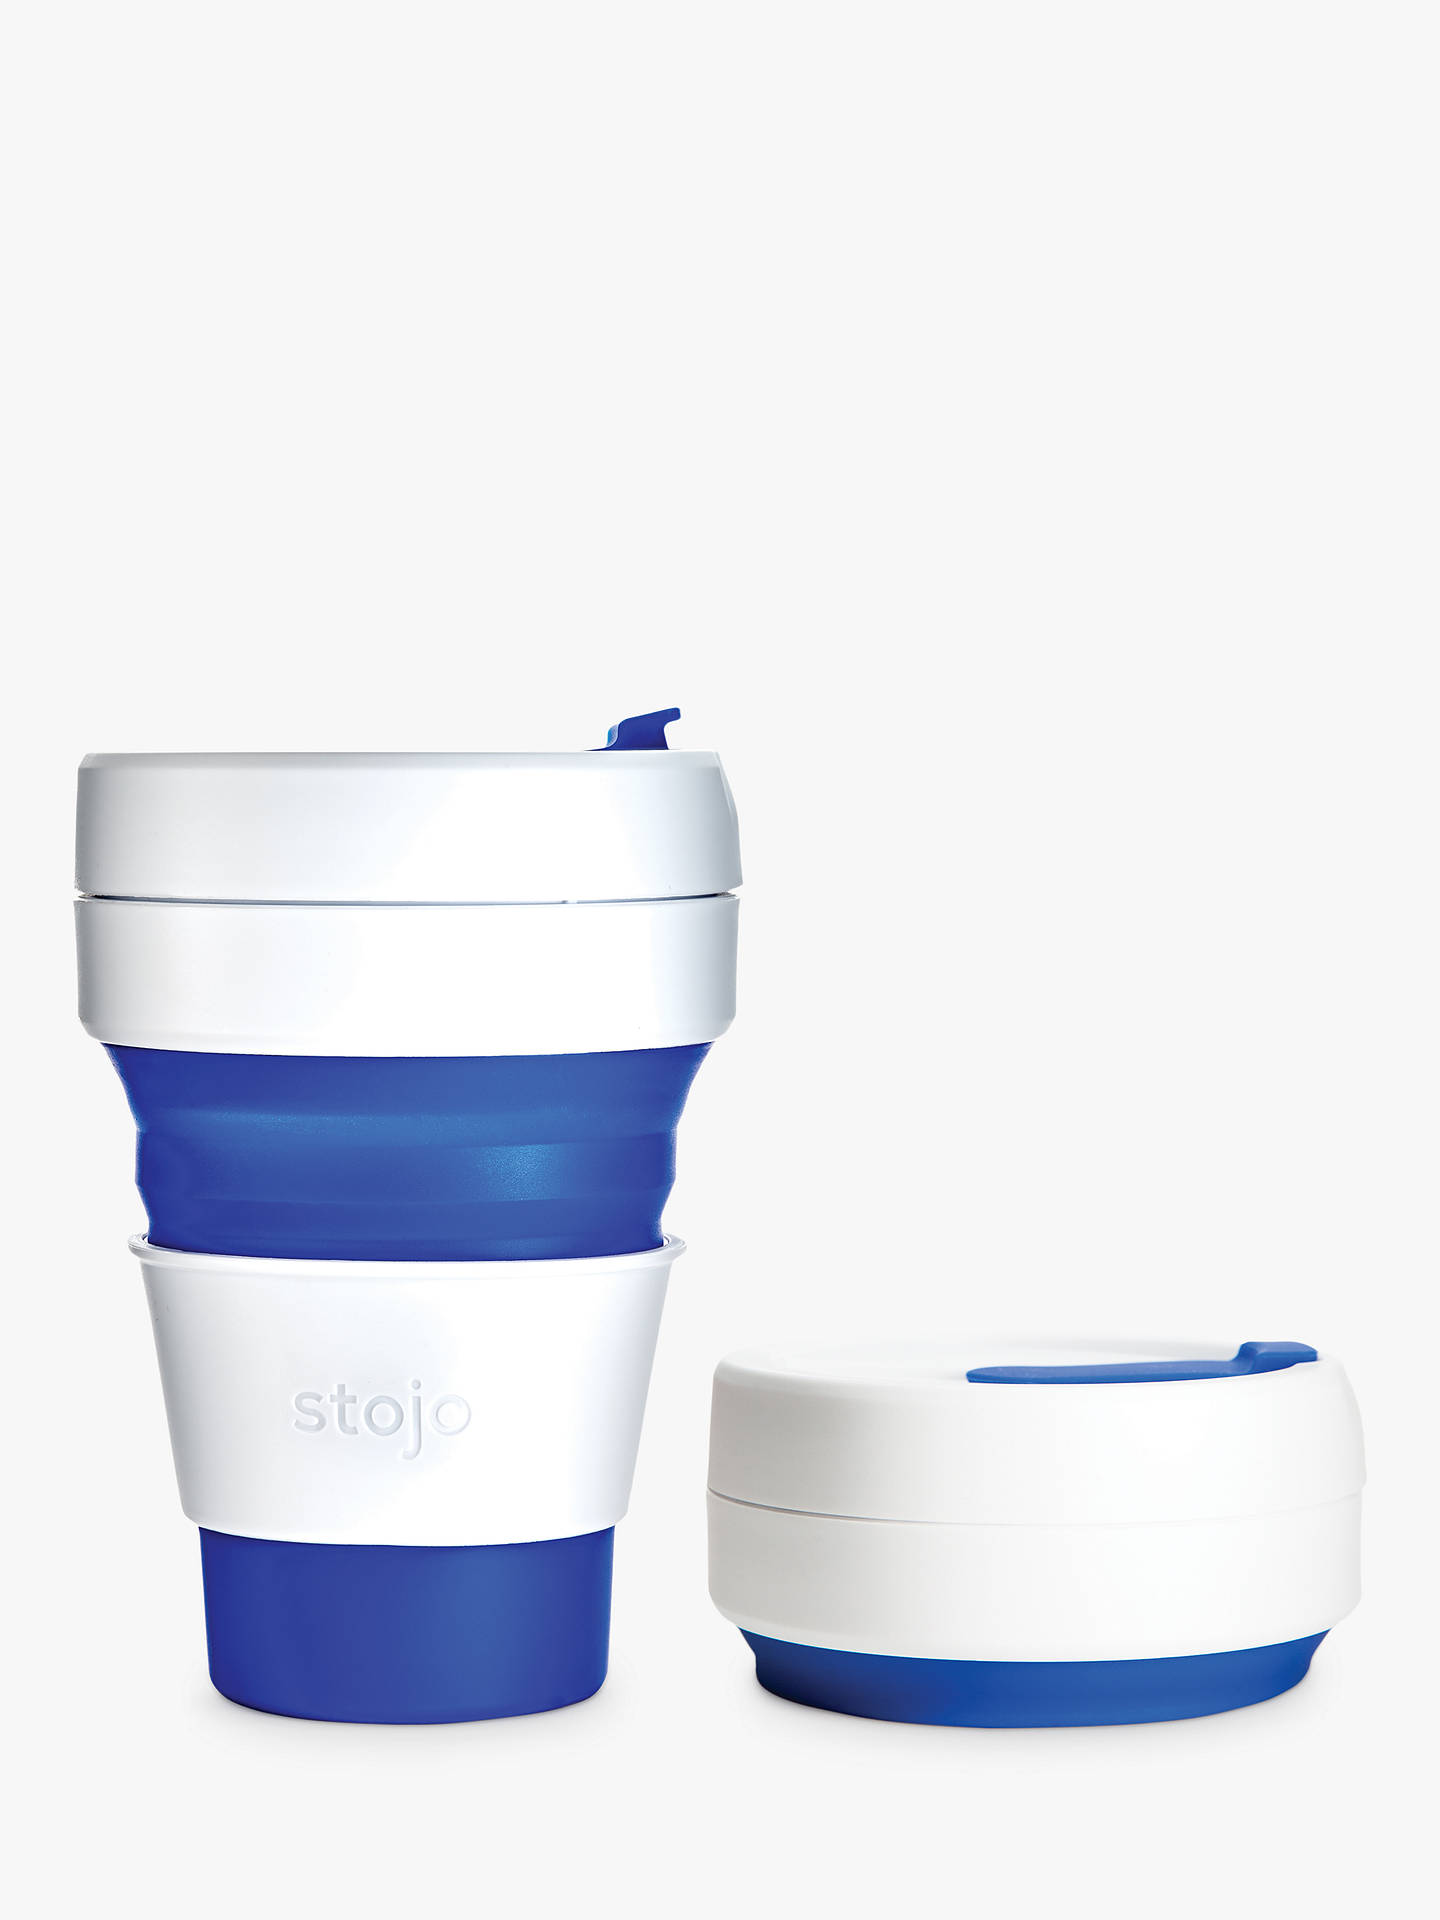 BuyStojo Collapsible Reusable Pocket Cup, 355ml, Blue Online at johnlewis.com